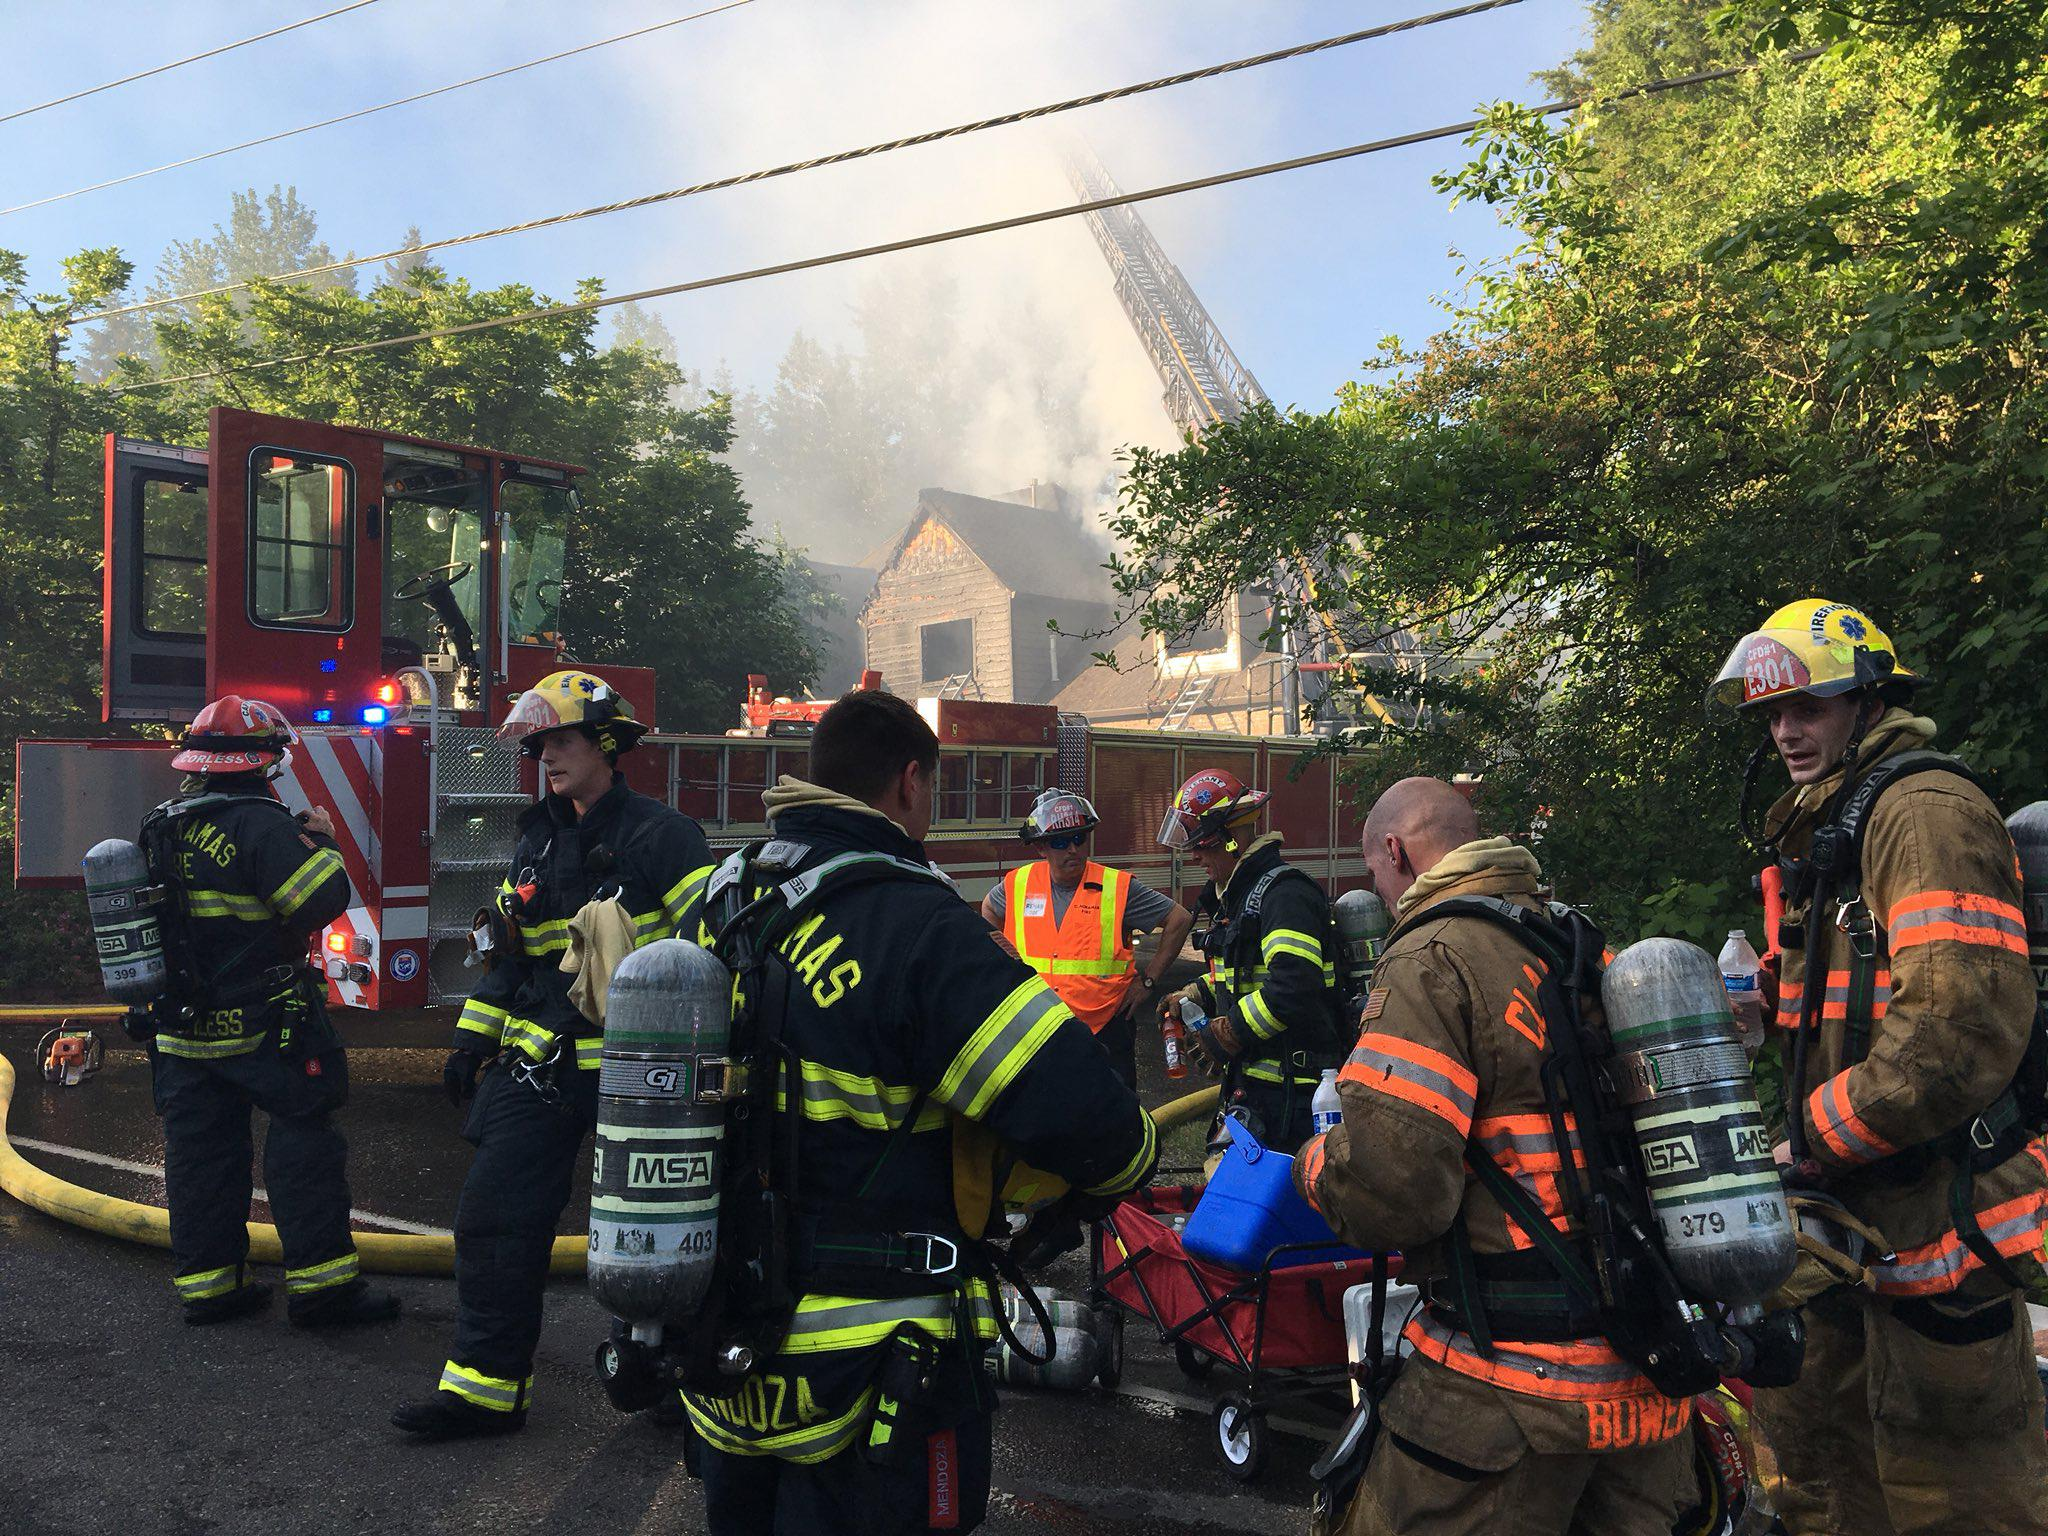 Clackamas firefighters grab liquids and rest as other crews arrive to help them fight a house fire on Mt. Scott Boulevard in Happy Valley Monday evening. (Photo: Clackamas Fire)